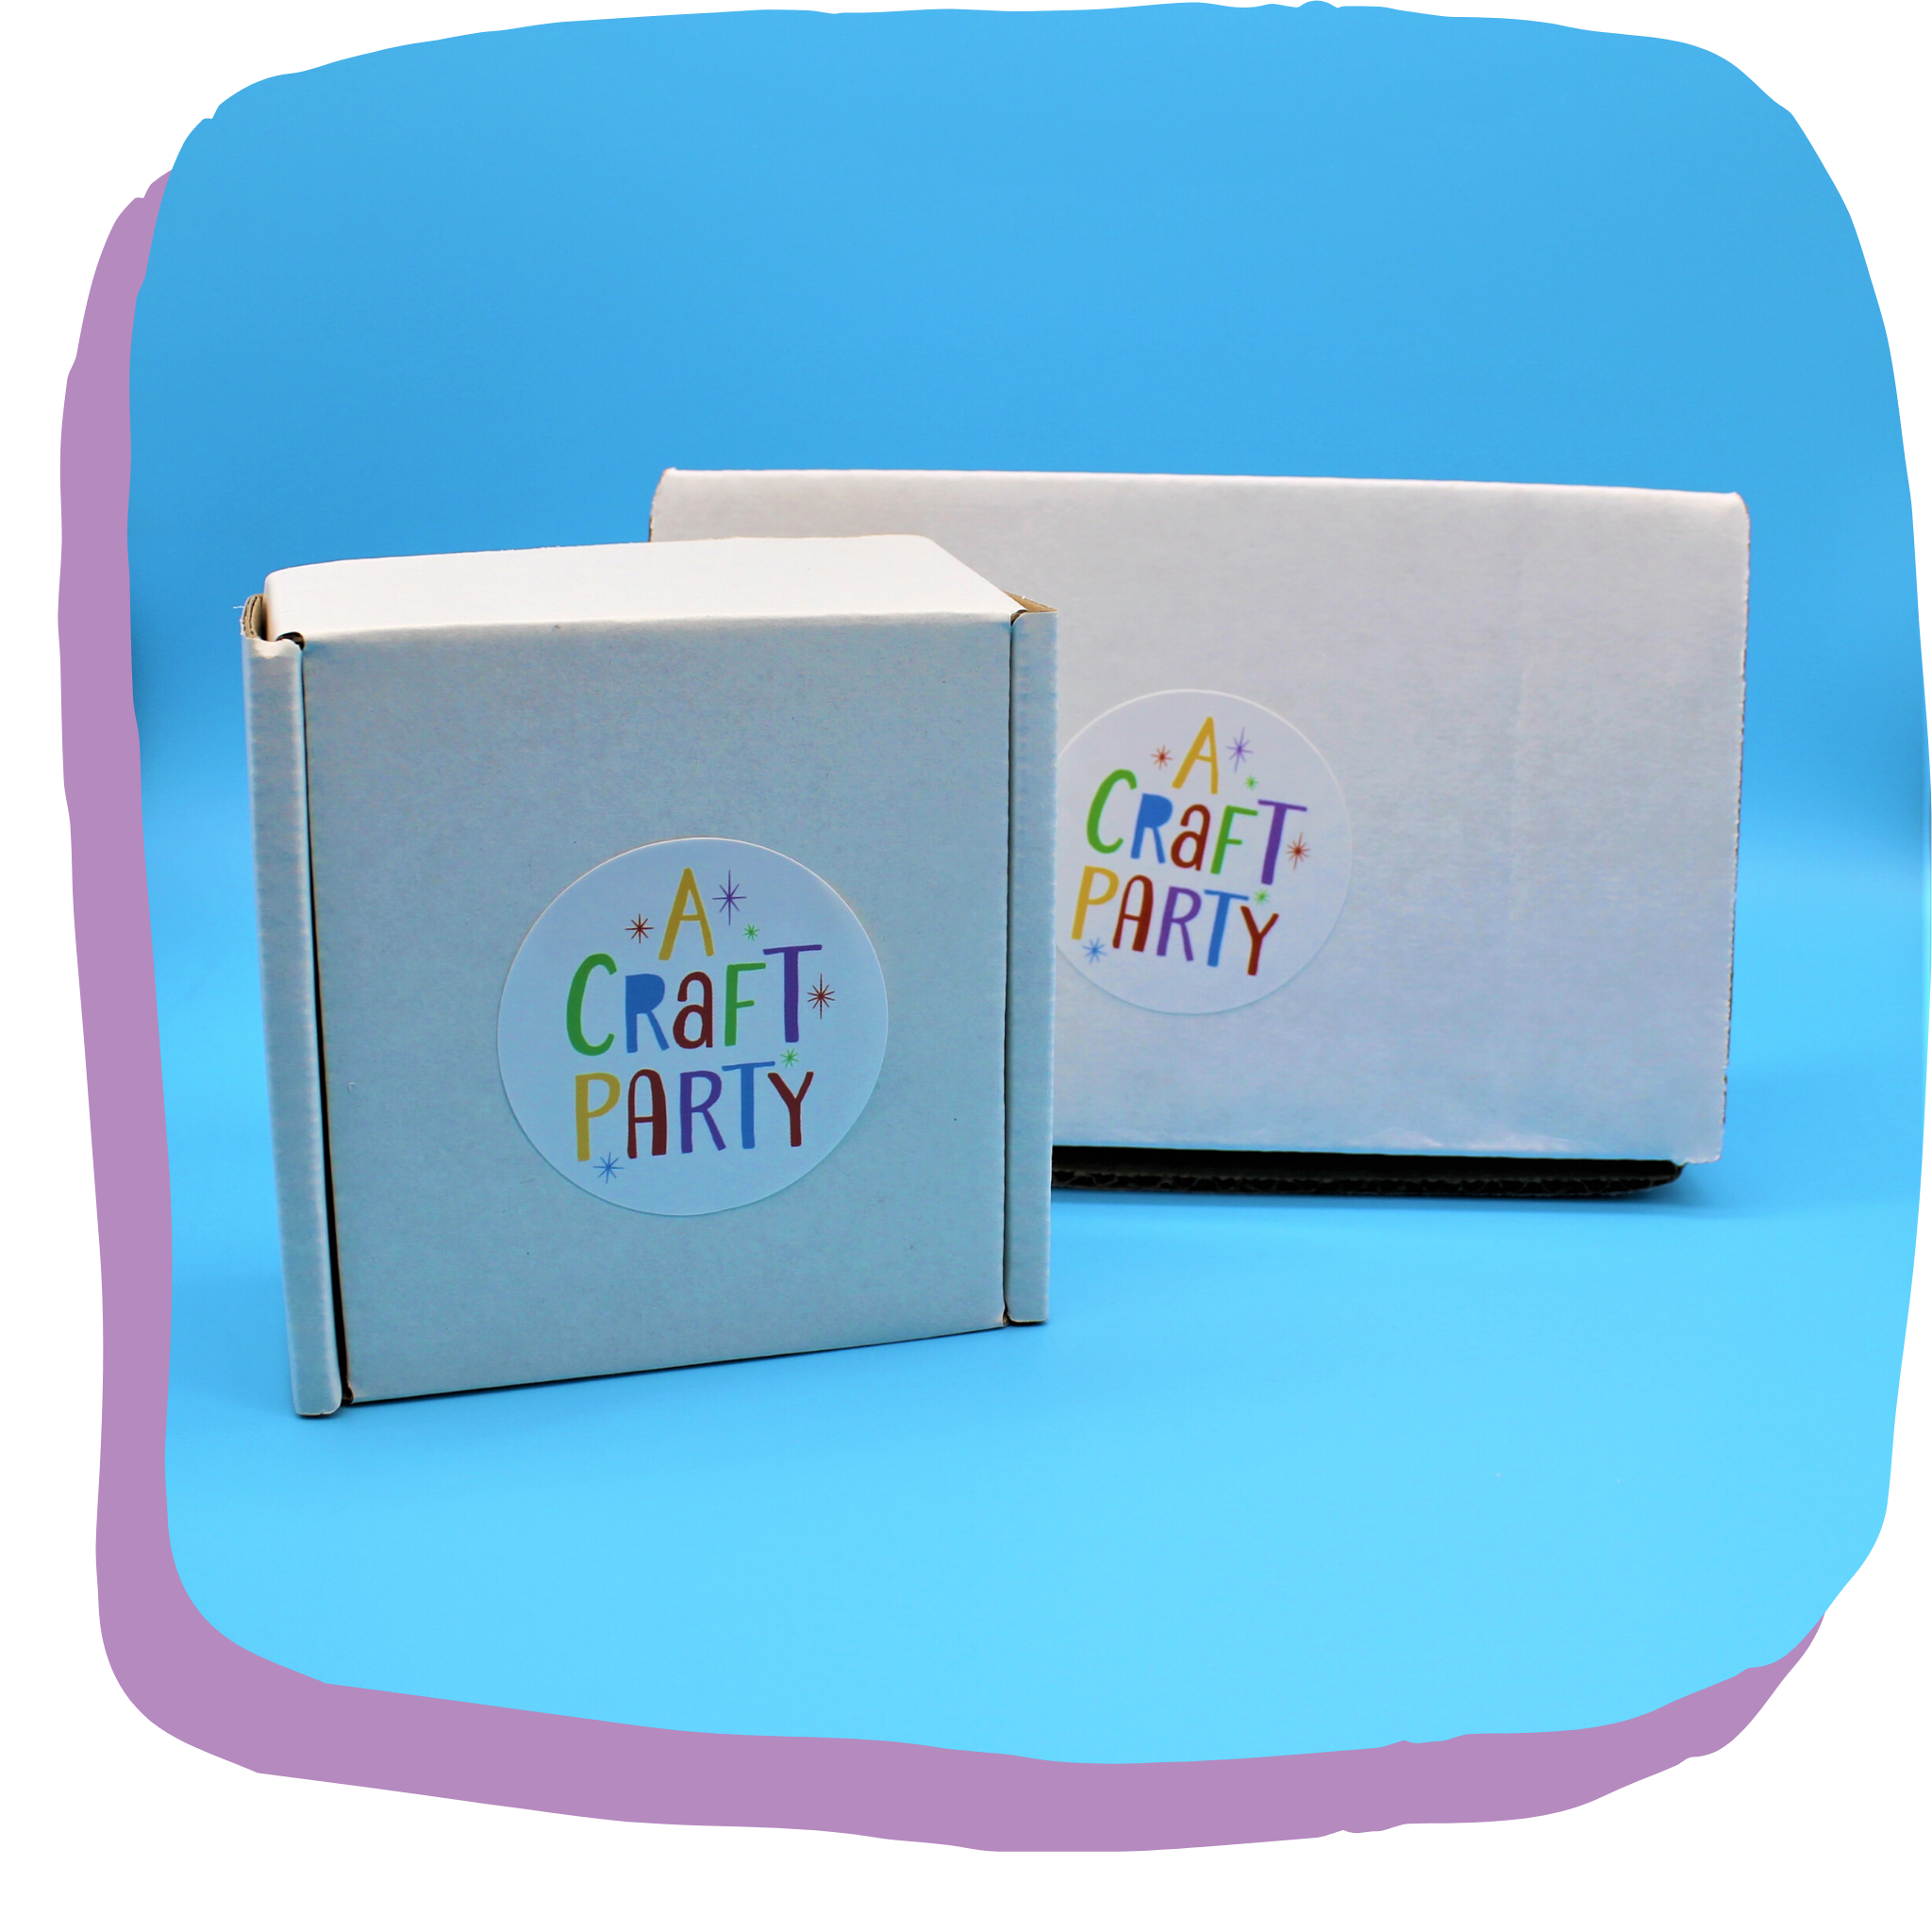 Subscription - A Craft Party Kit shipped weekly